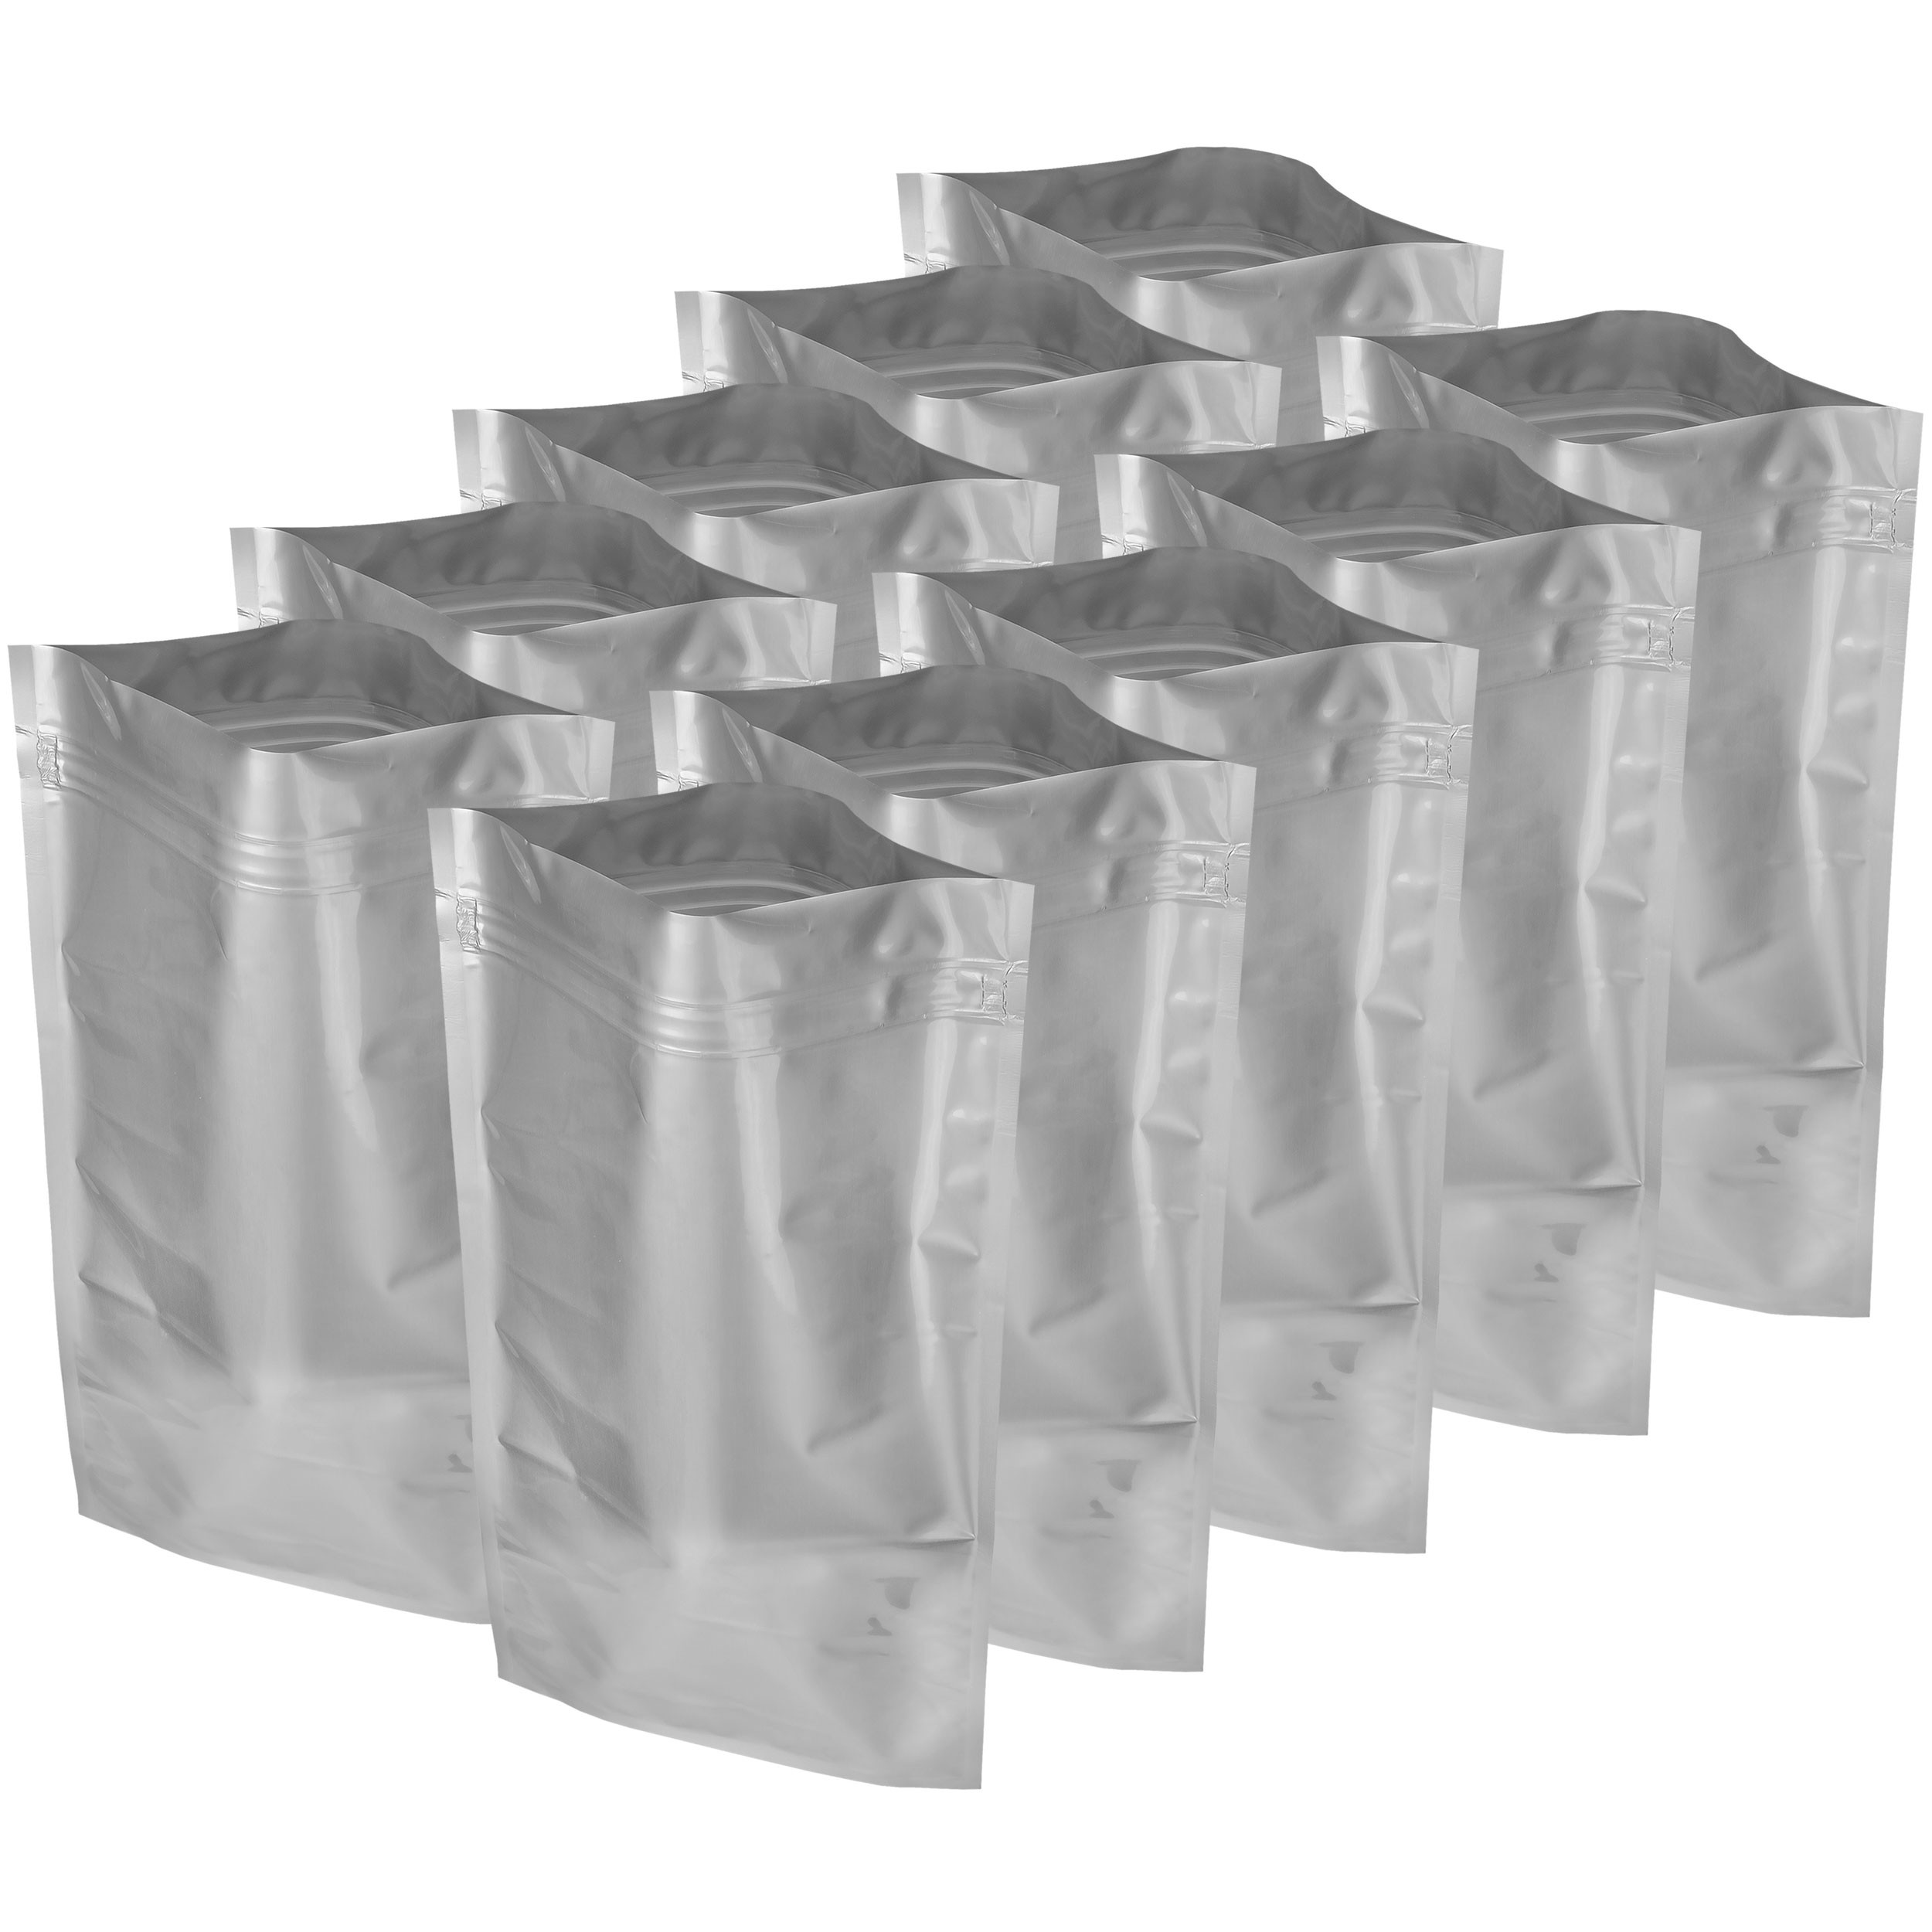 "20x30"" Aluminized Moisture Barrier & Static Shielding Zipper Bags, Set of 10"